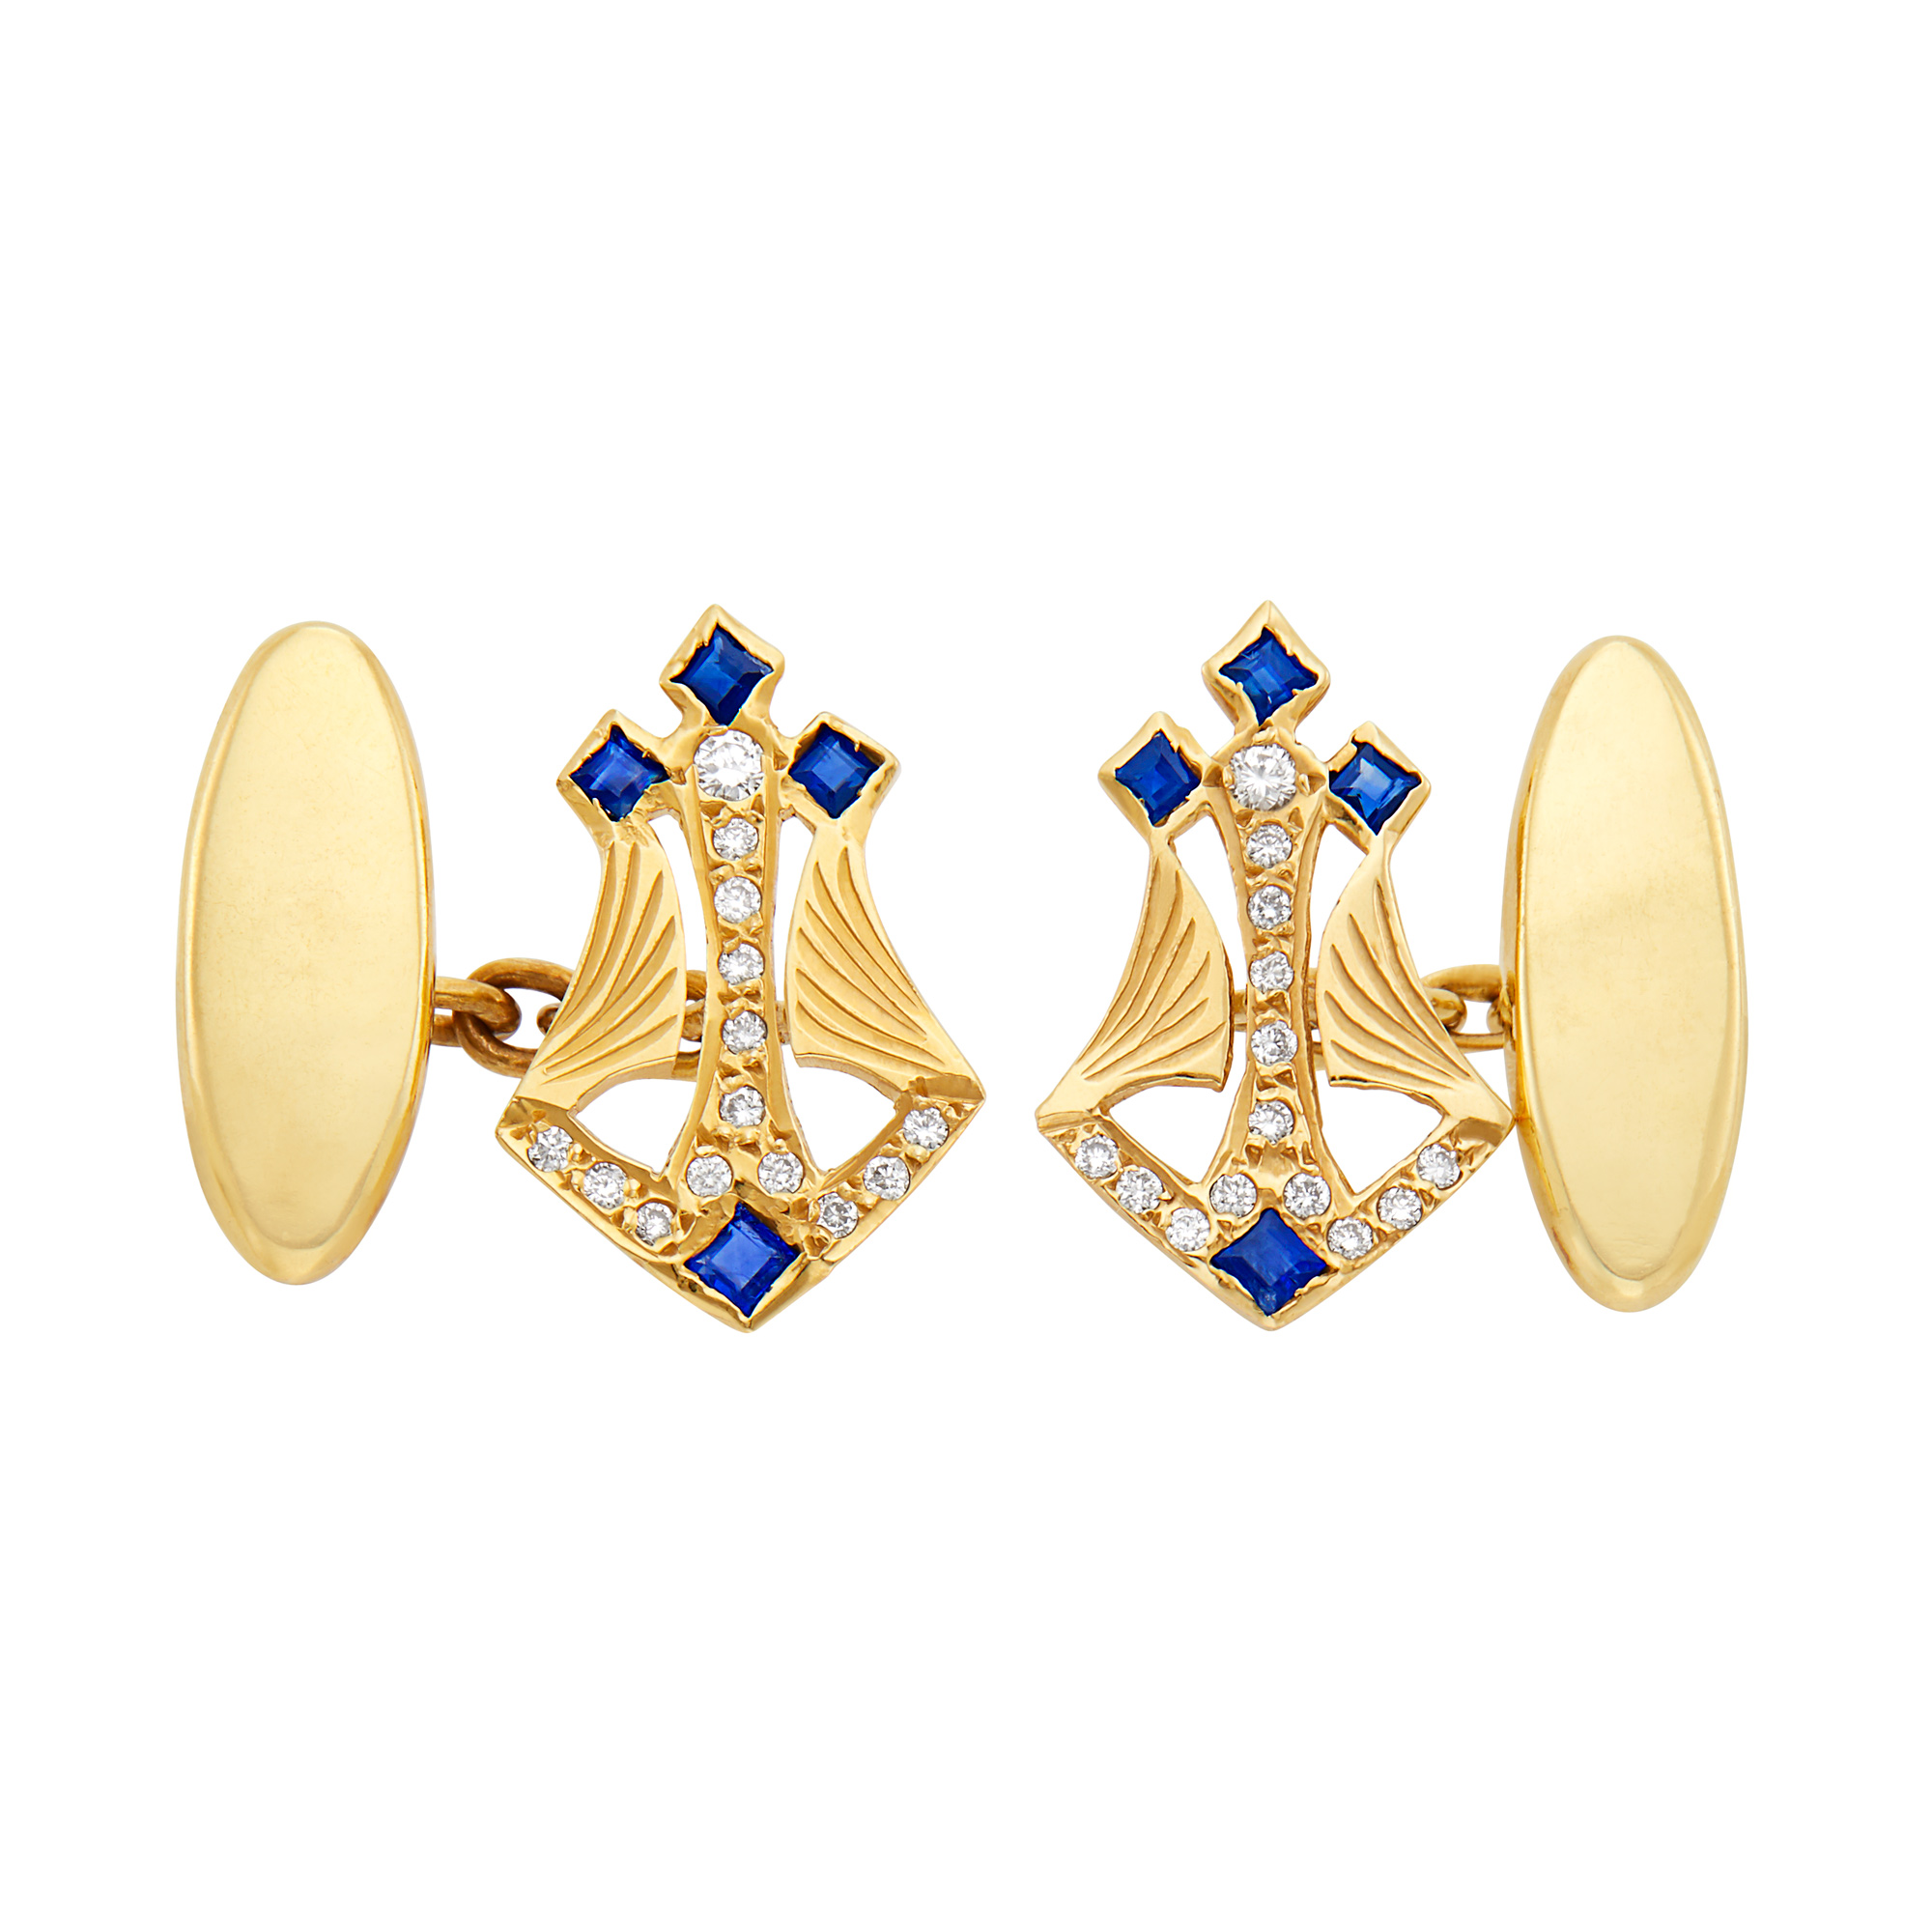 Lot image - Pair of Gold, Diamond and Sapphire Cufflinks